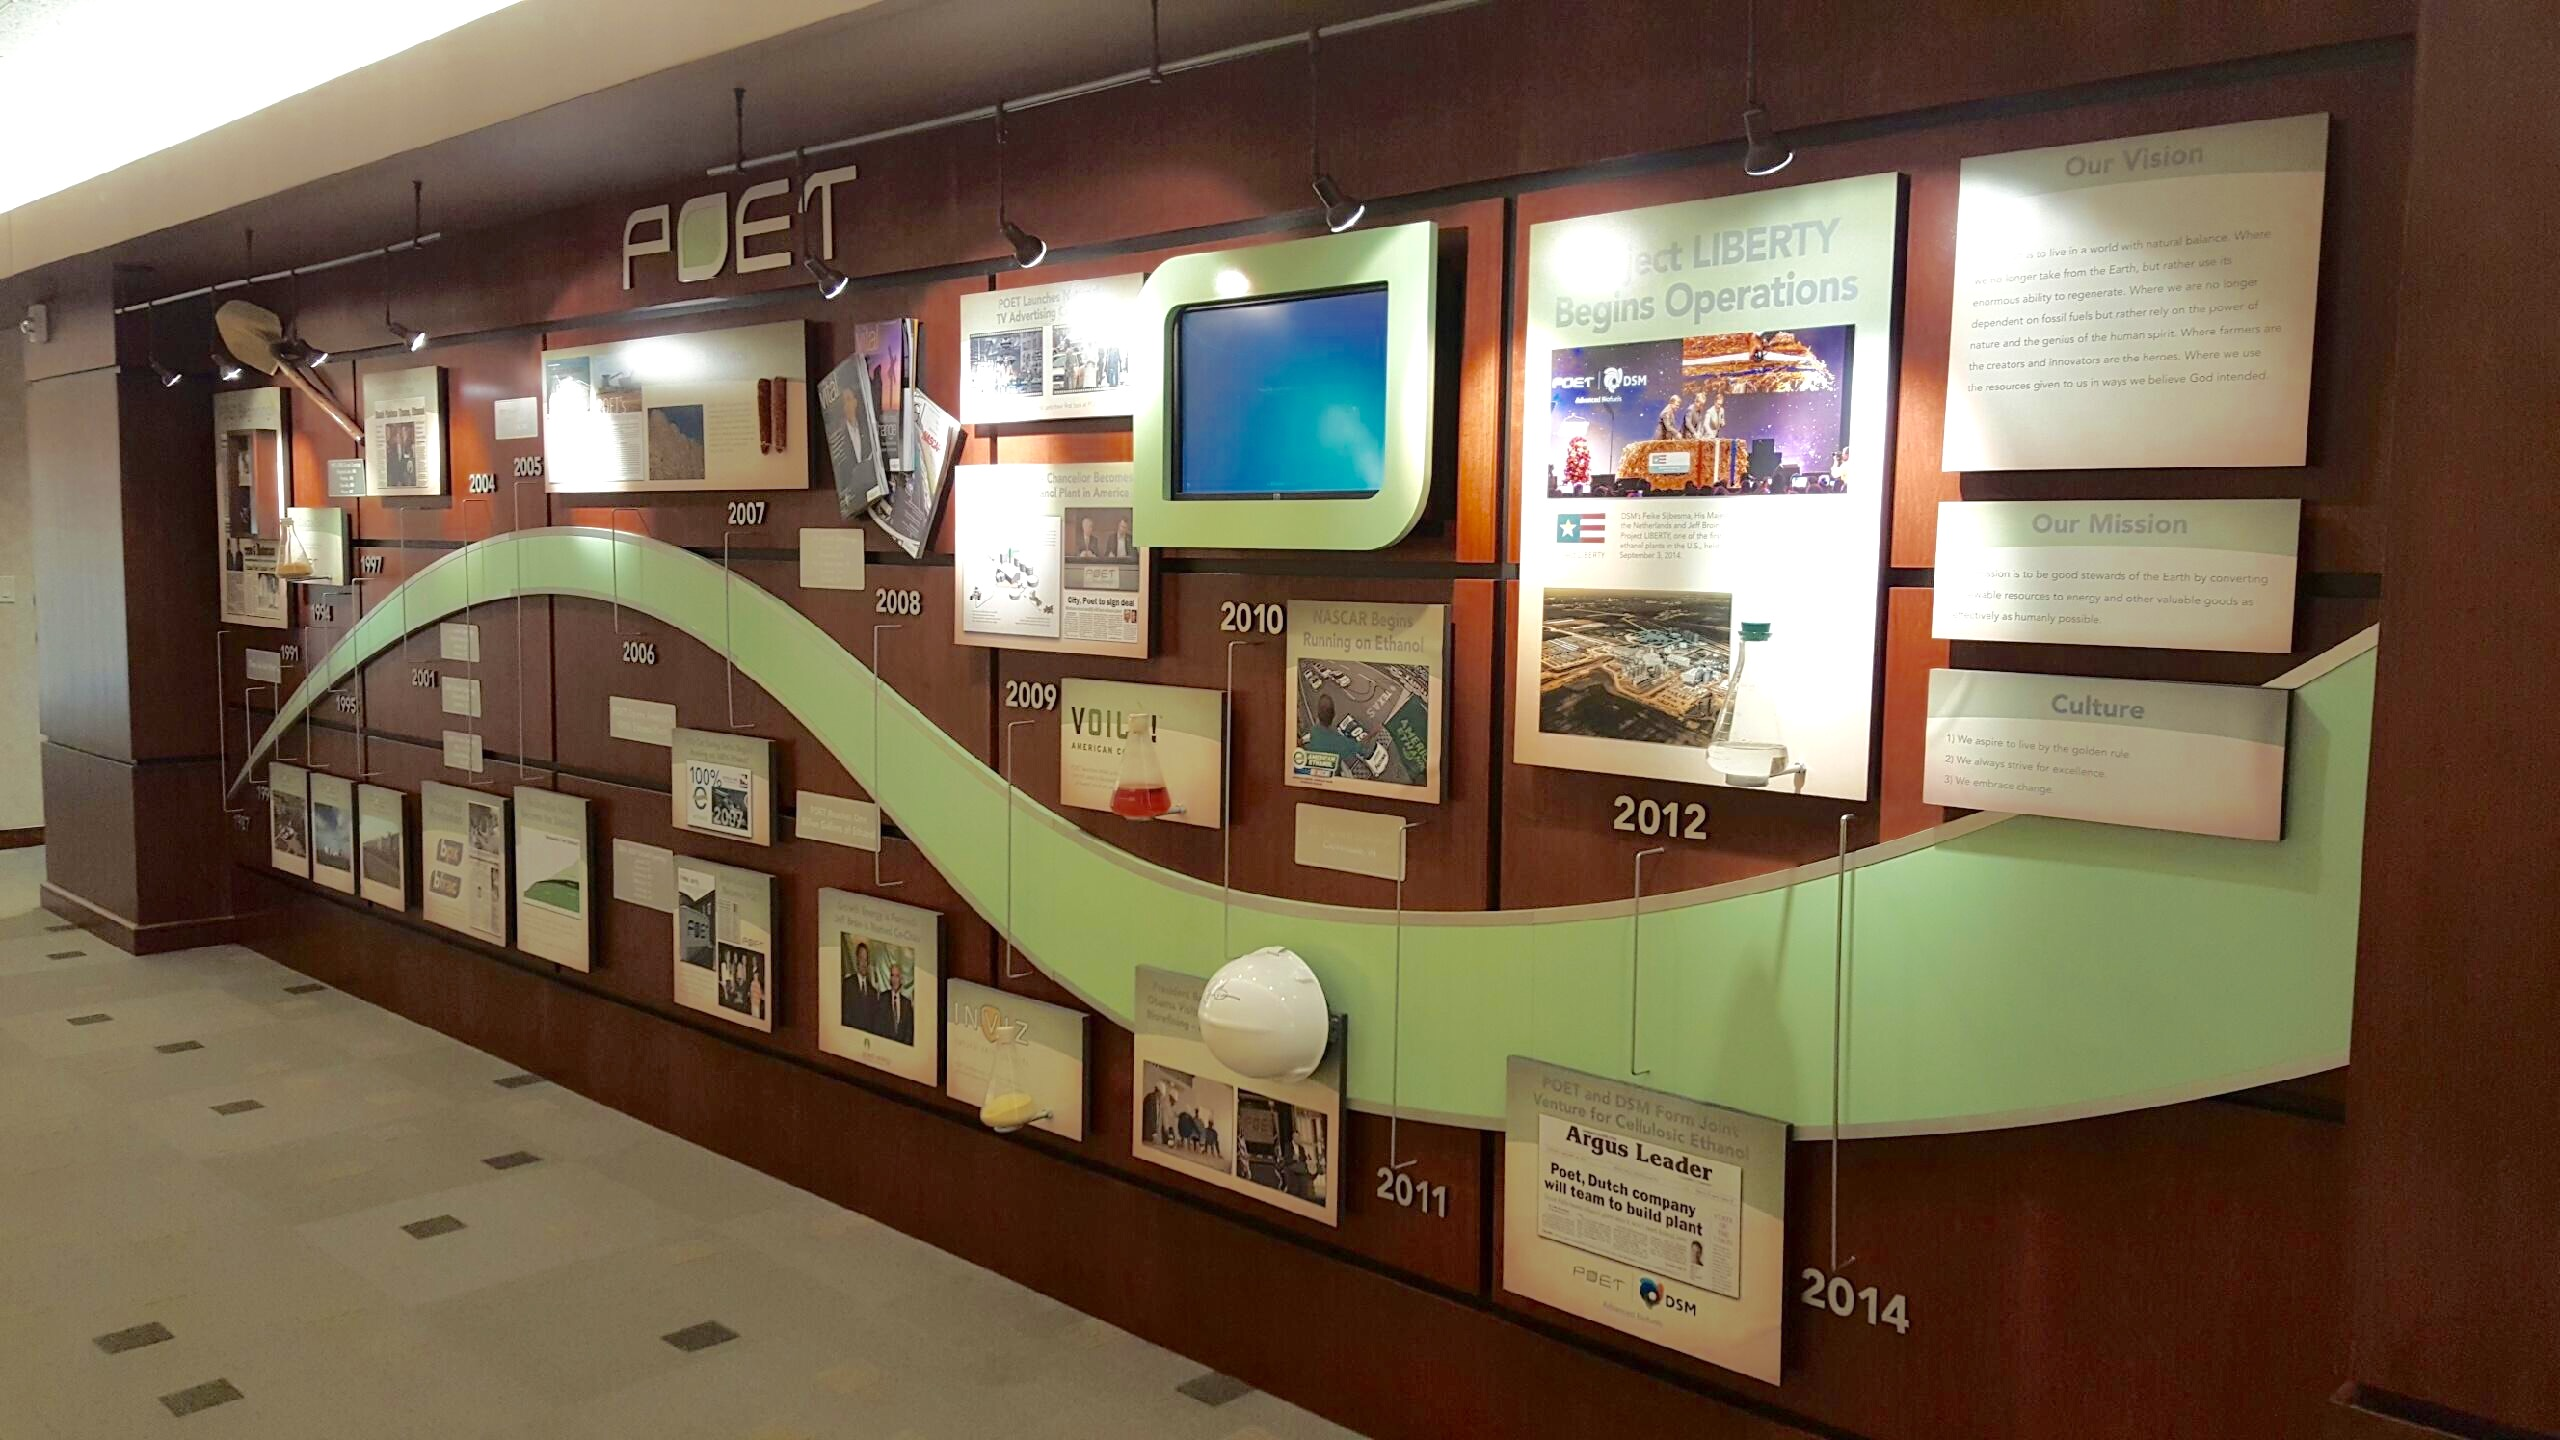 POET History Wall – Sioux Falls, SD